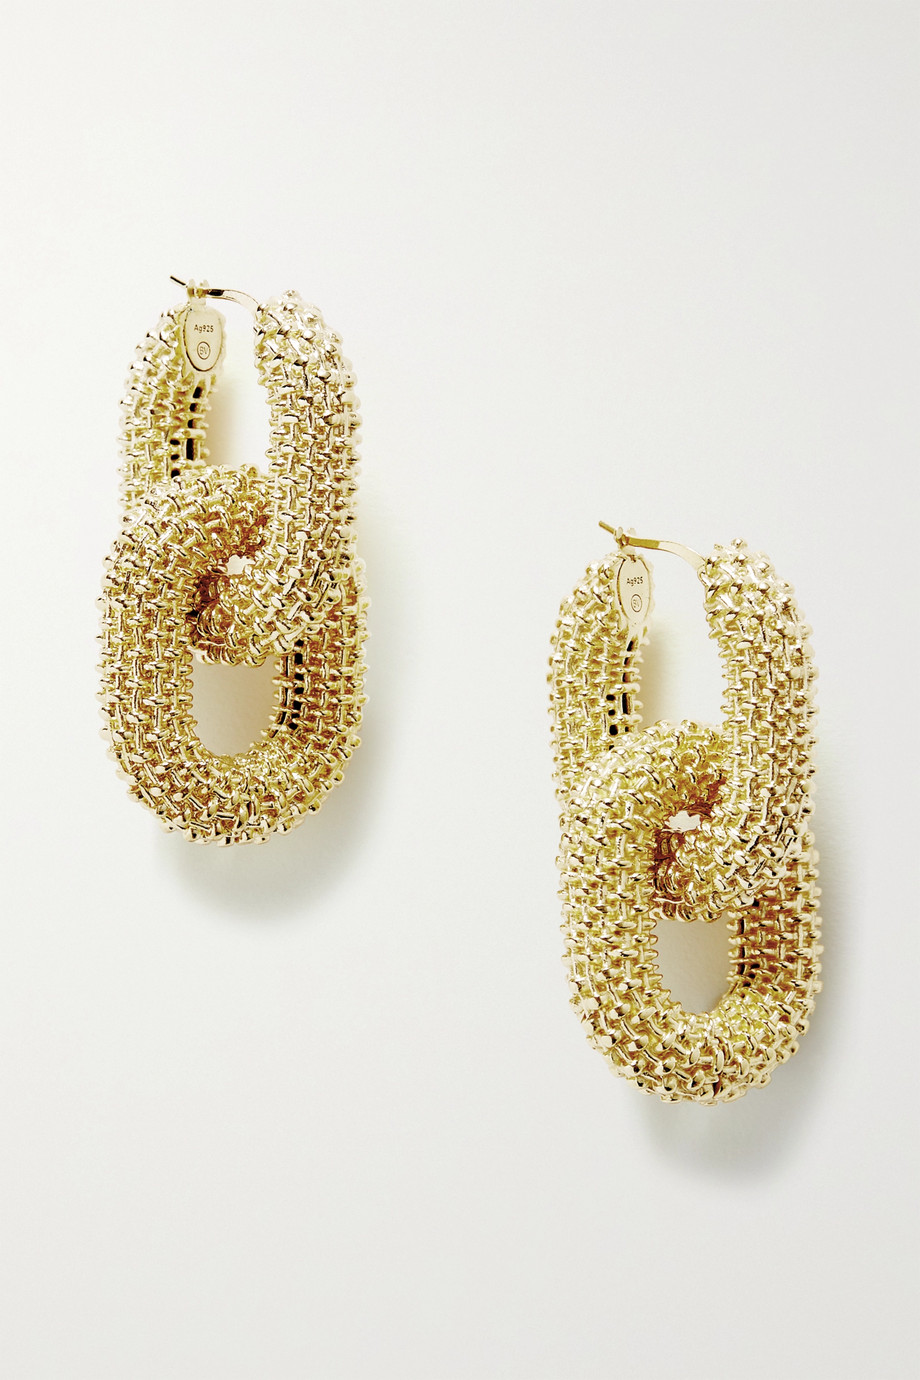 Bottega Veneta Textured gold-tone earrings